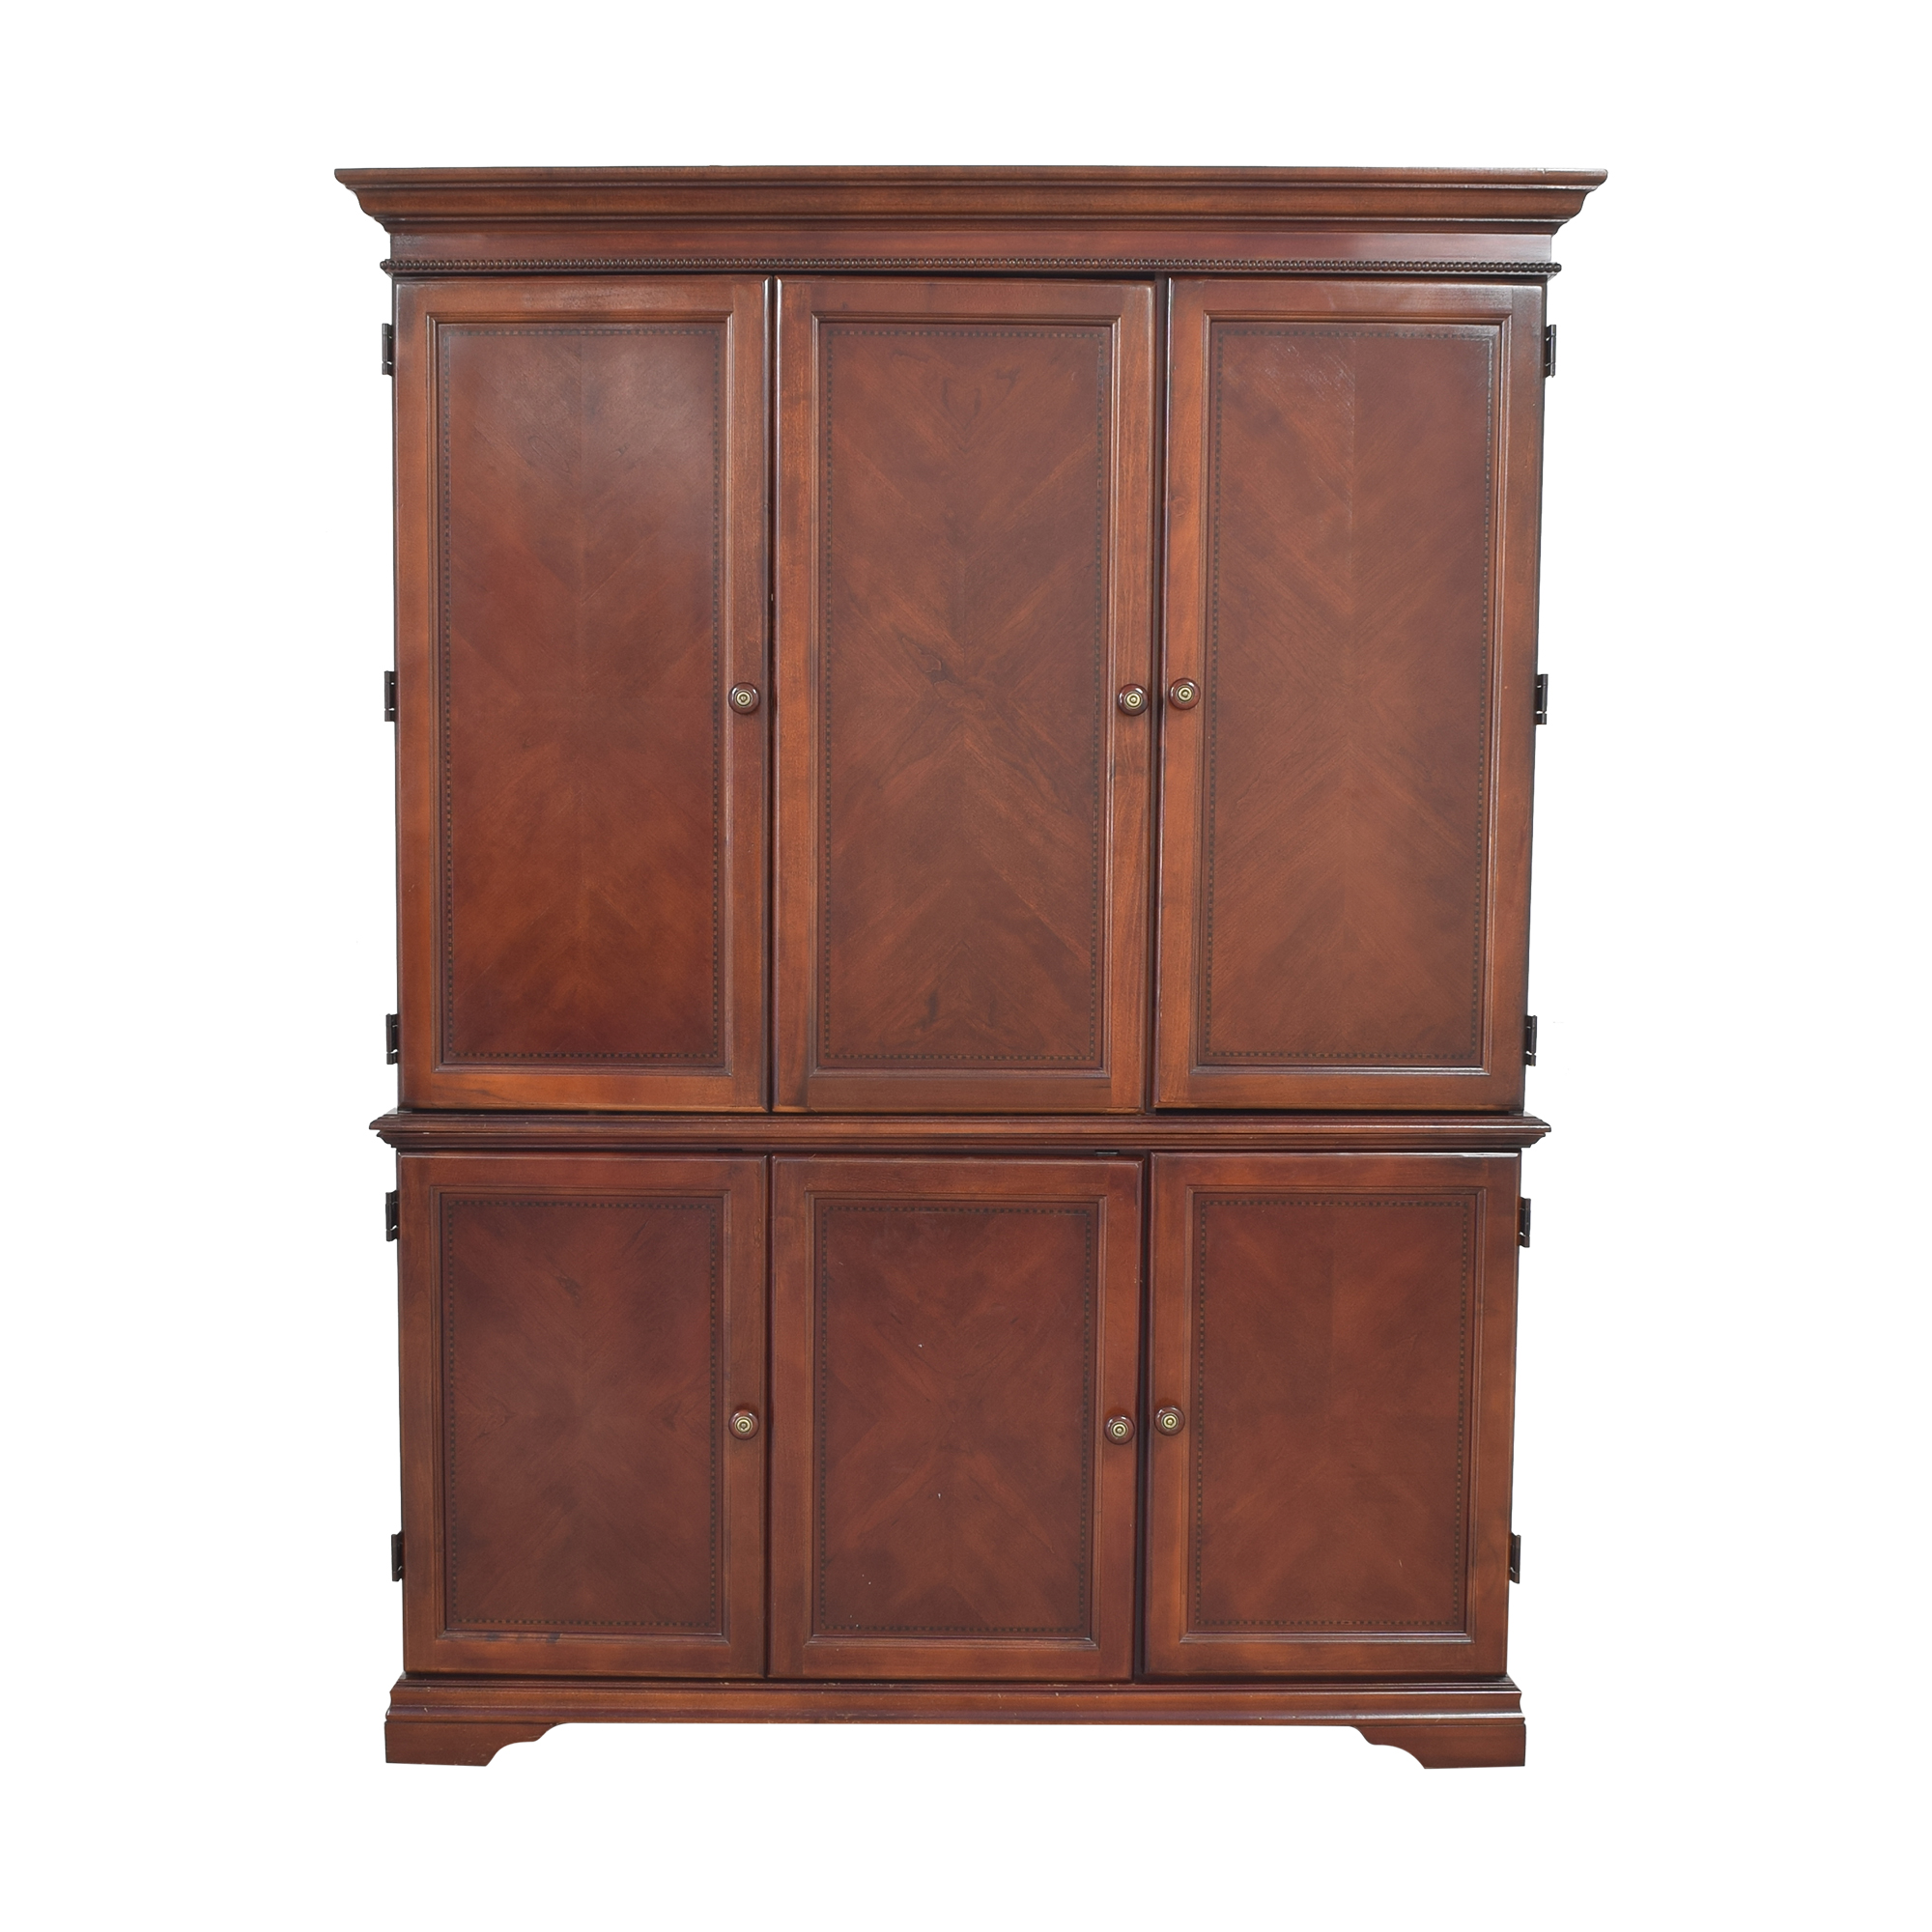 North Carolina Furniture Company North Carolina Furniture Home Office Armoire coupon